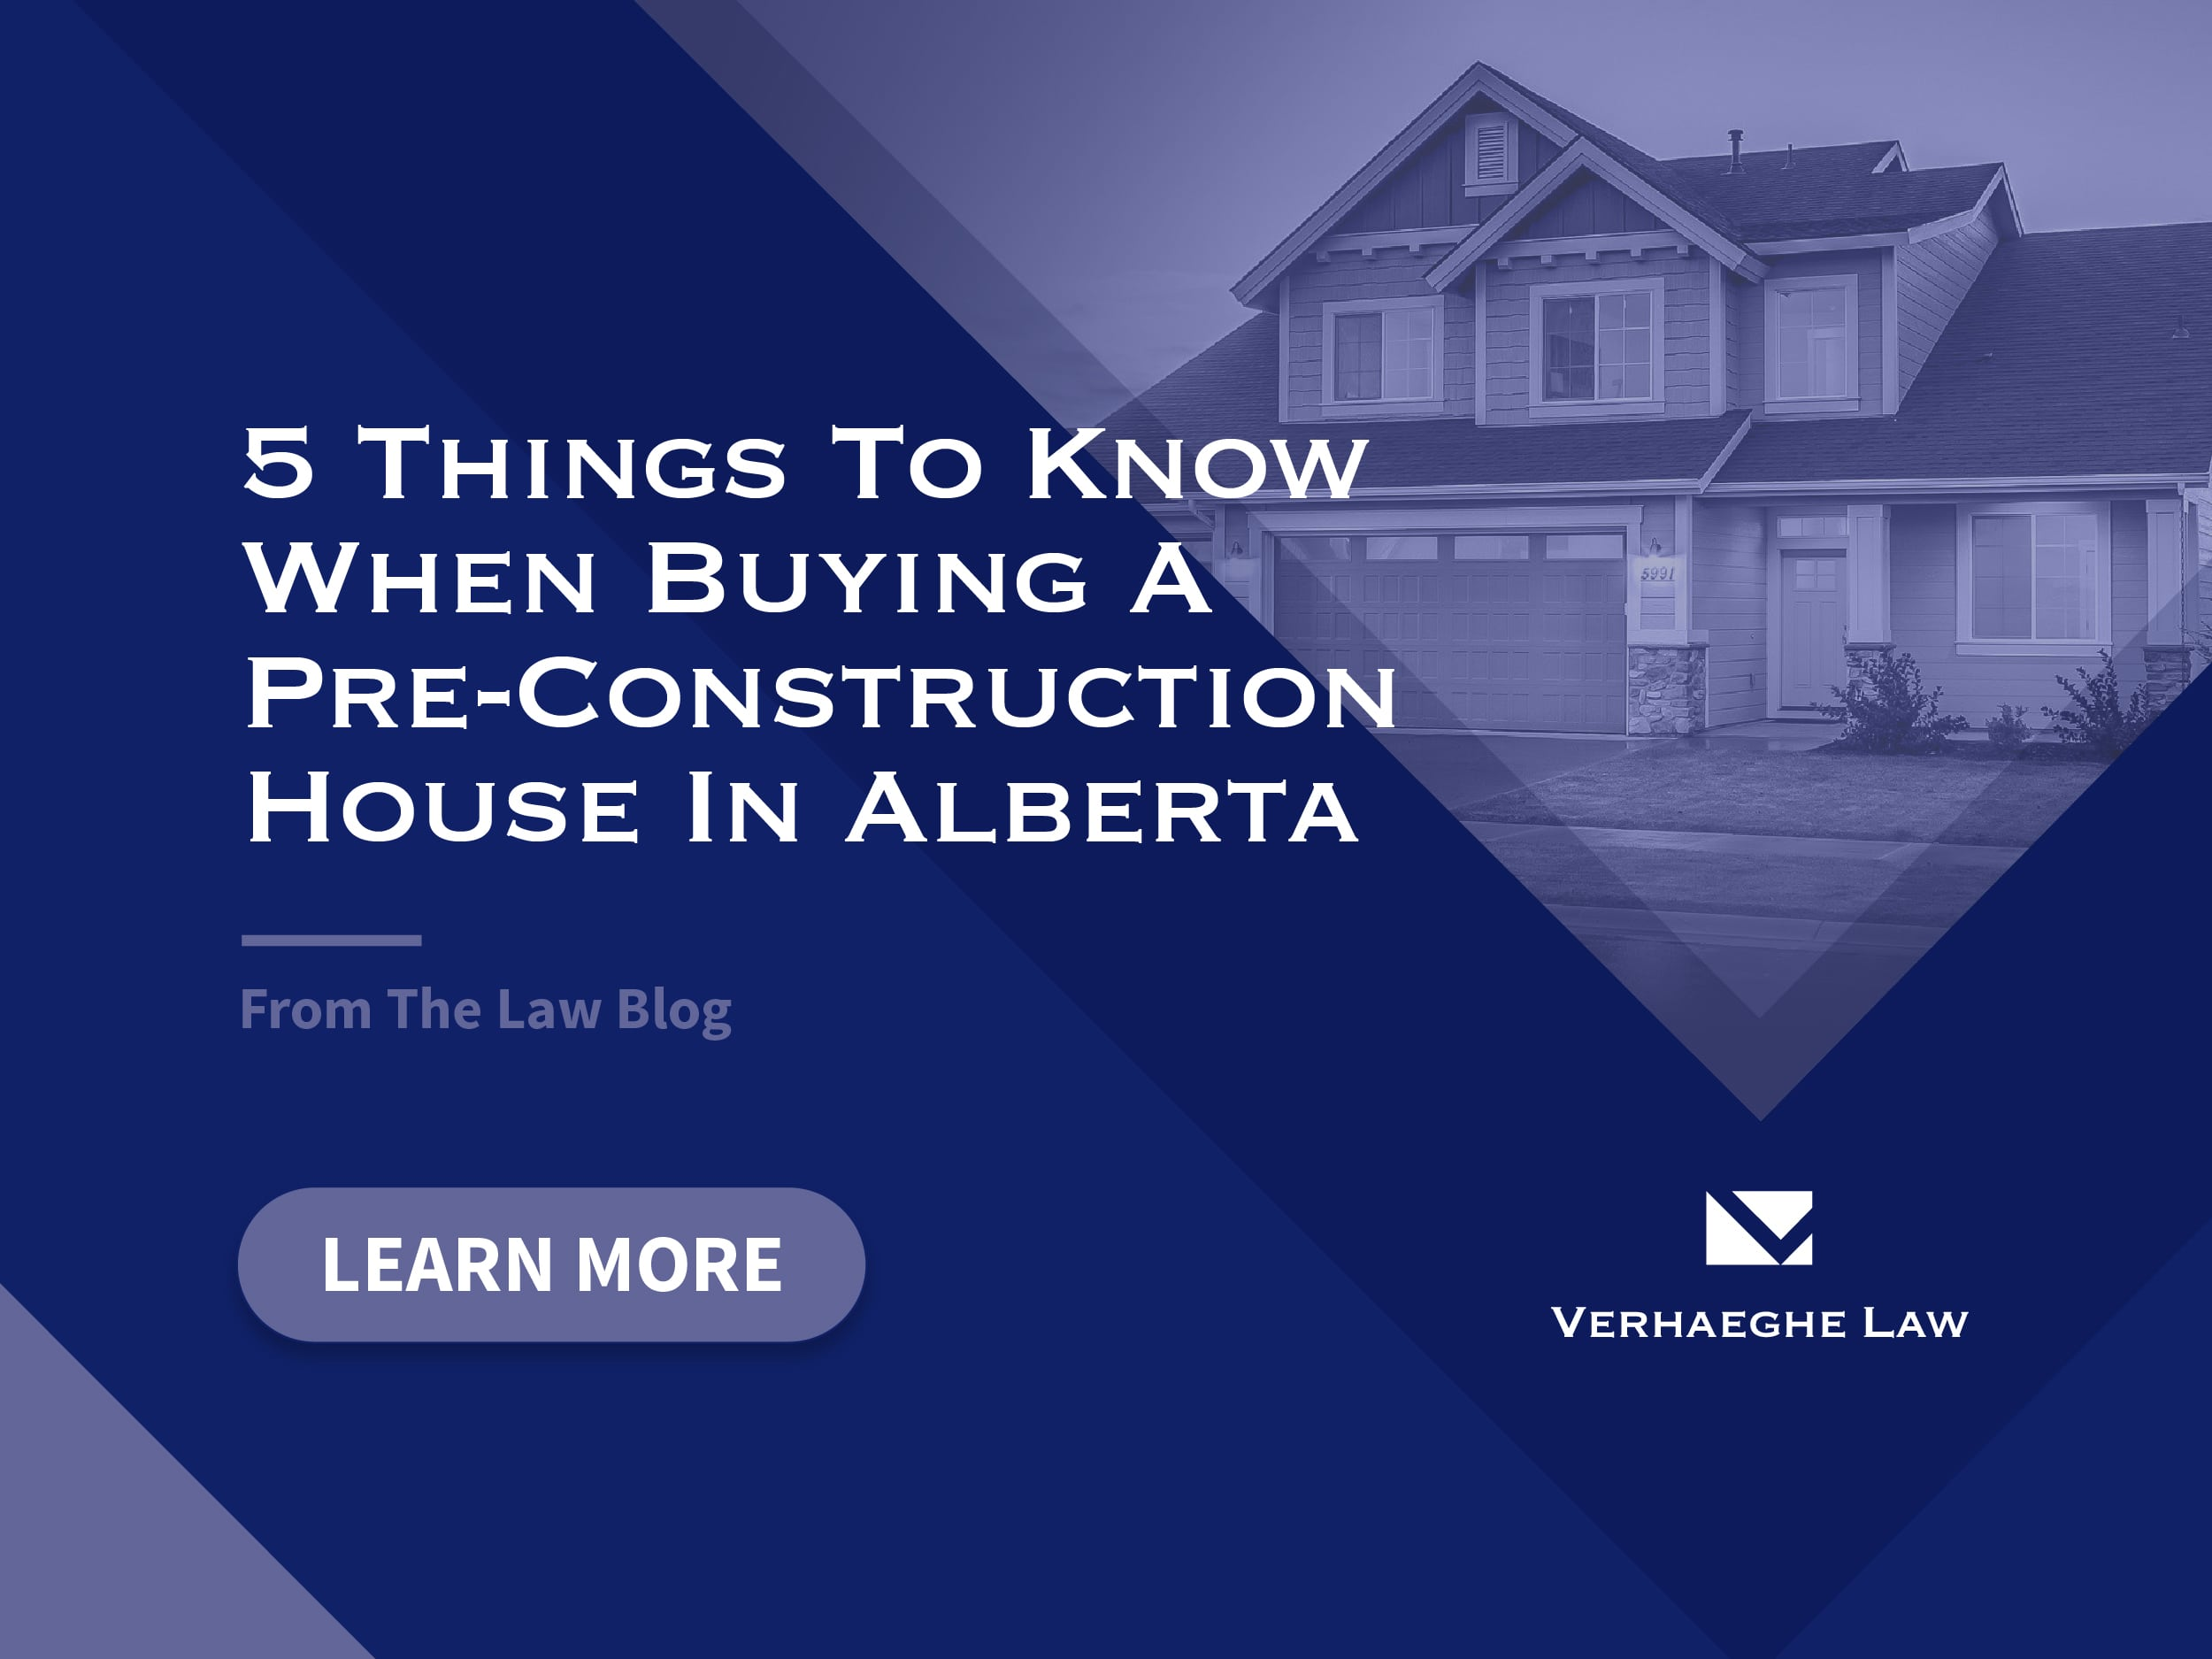 55 things to know when buying a pre-construction house in Alberta